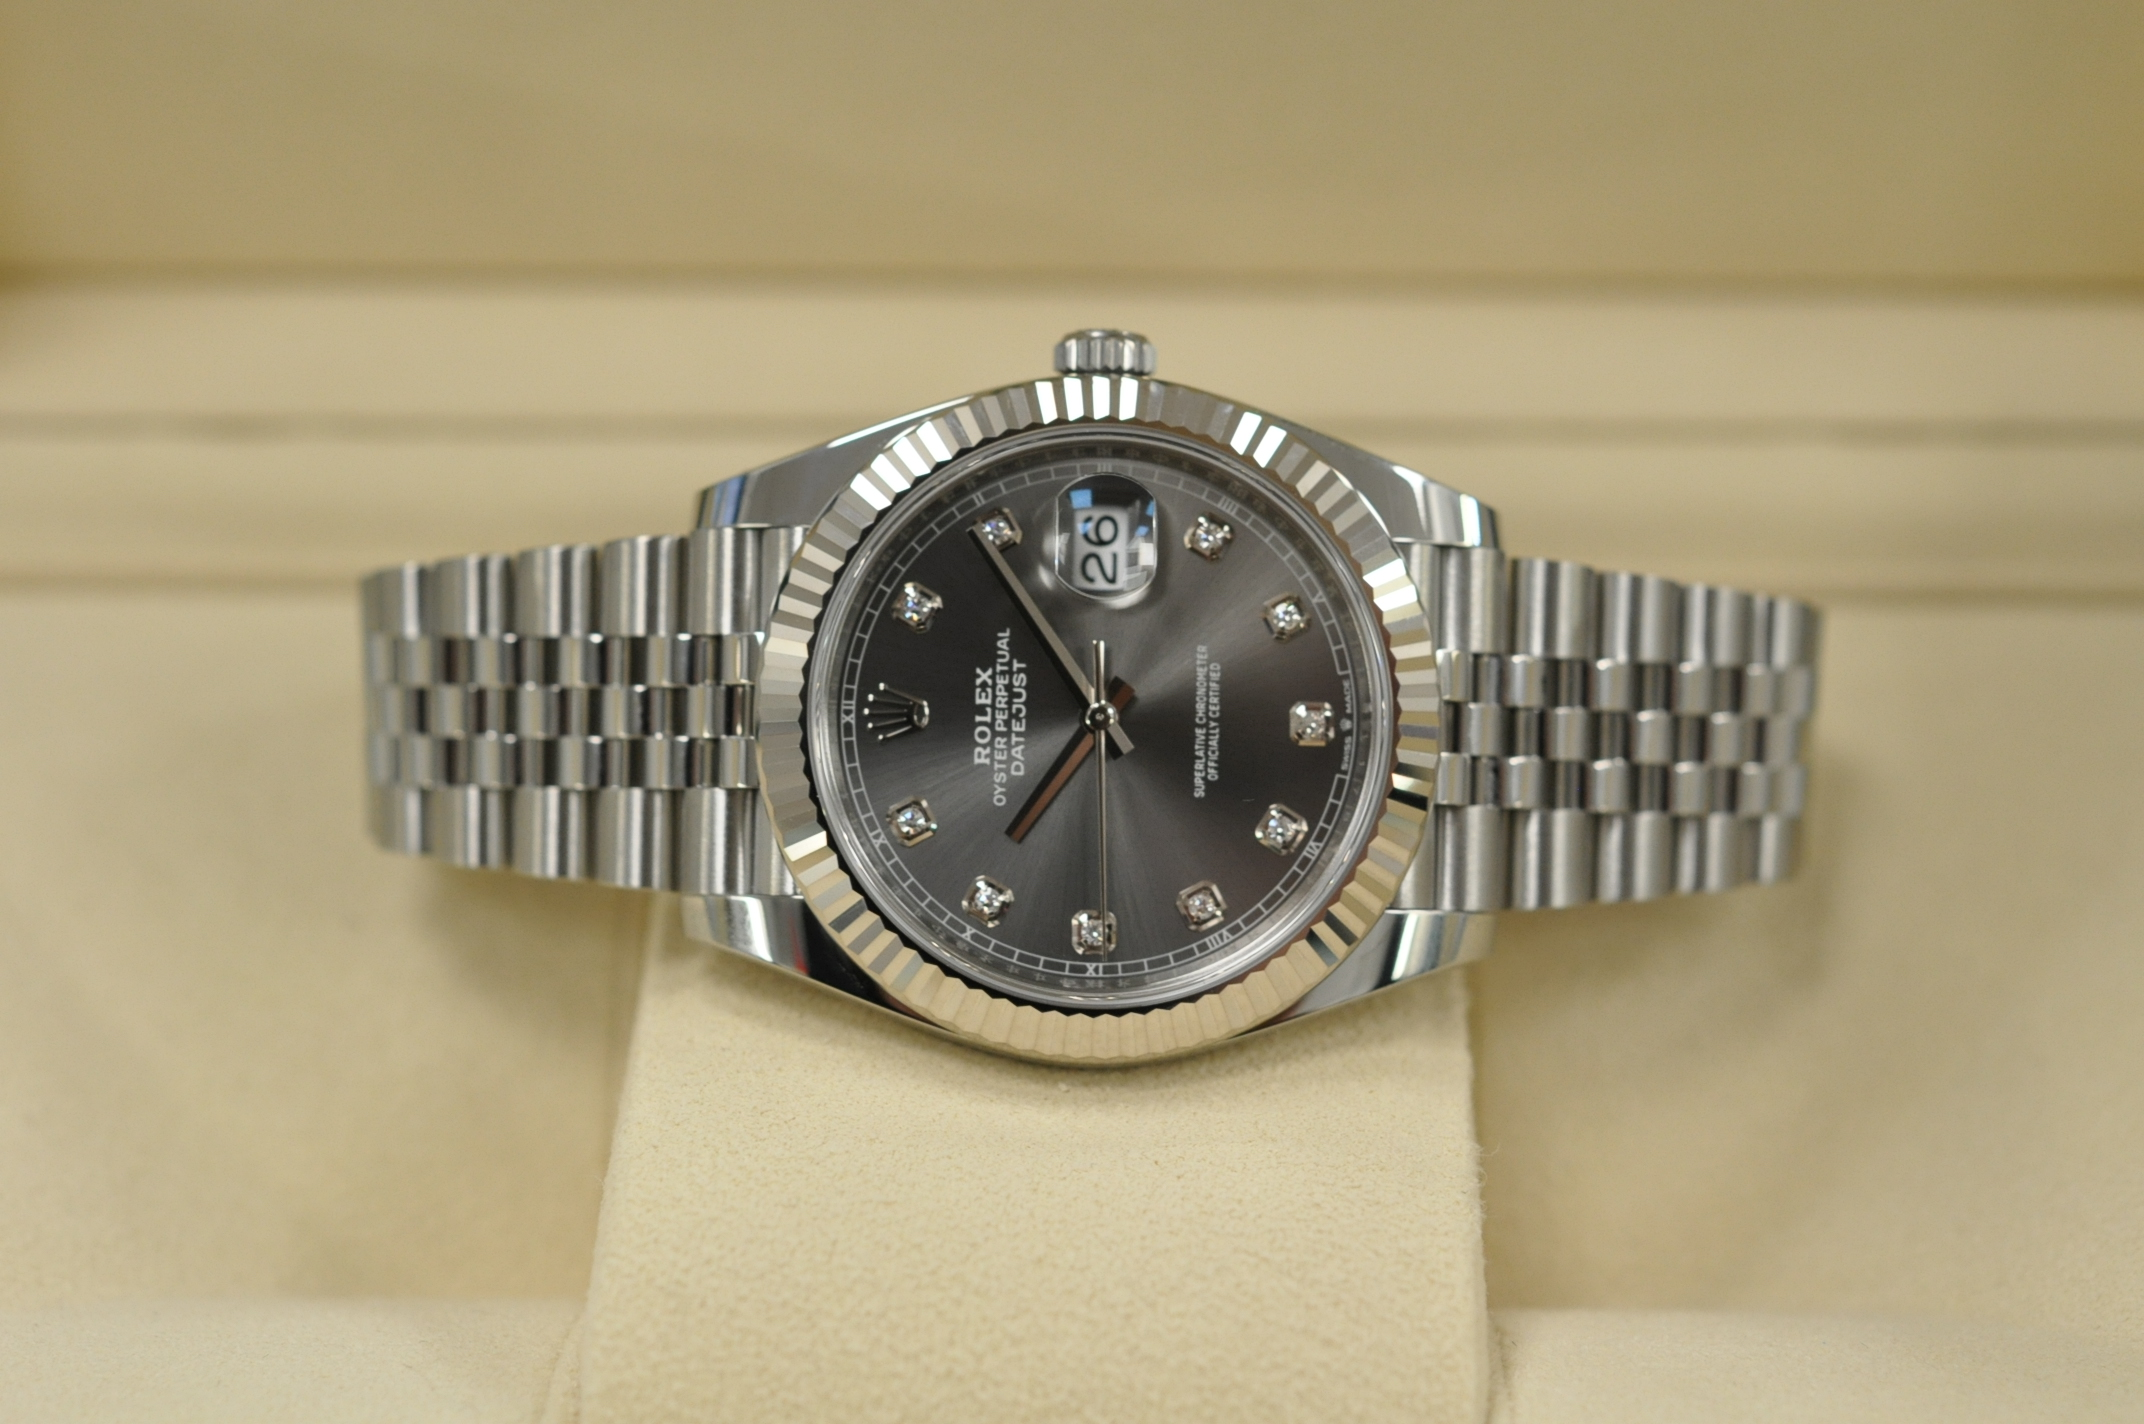 New 2020 Datejust 41 Rhodium Diamond Dial